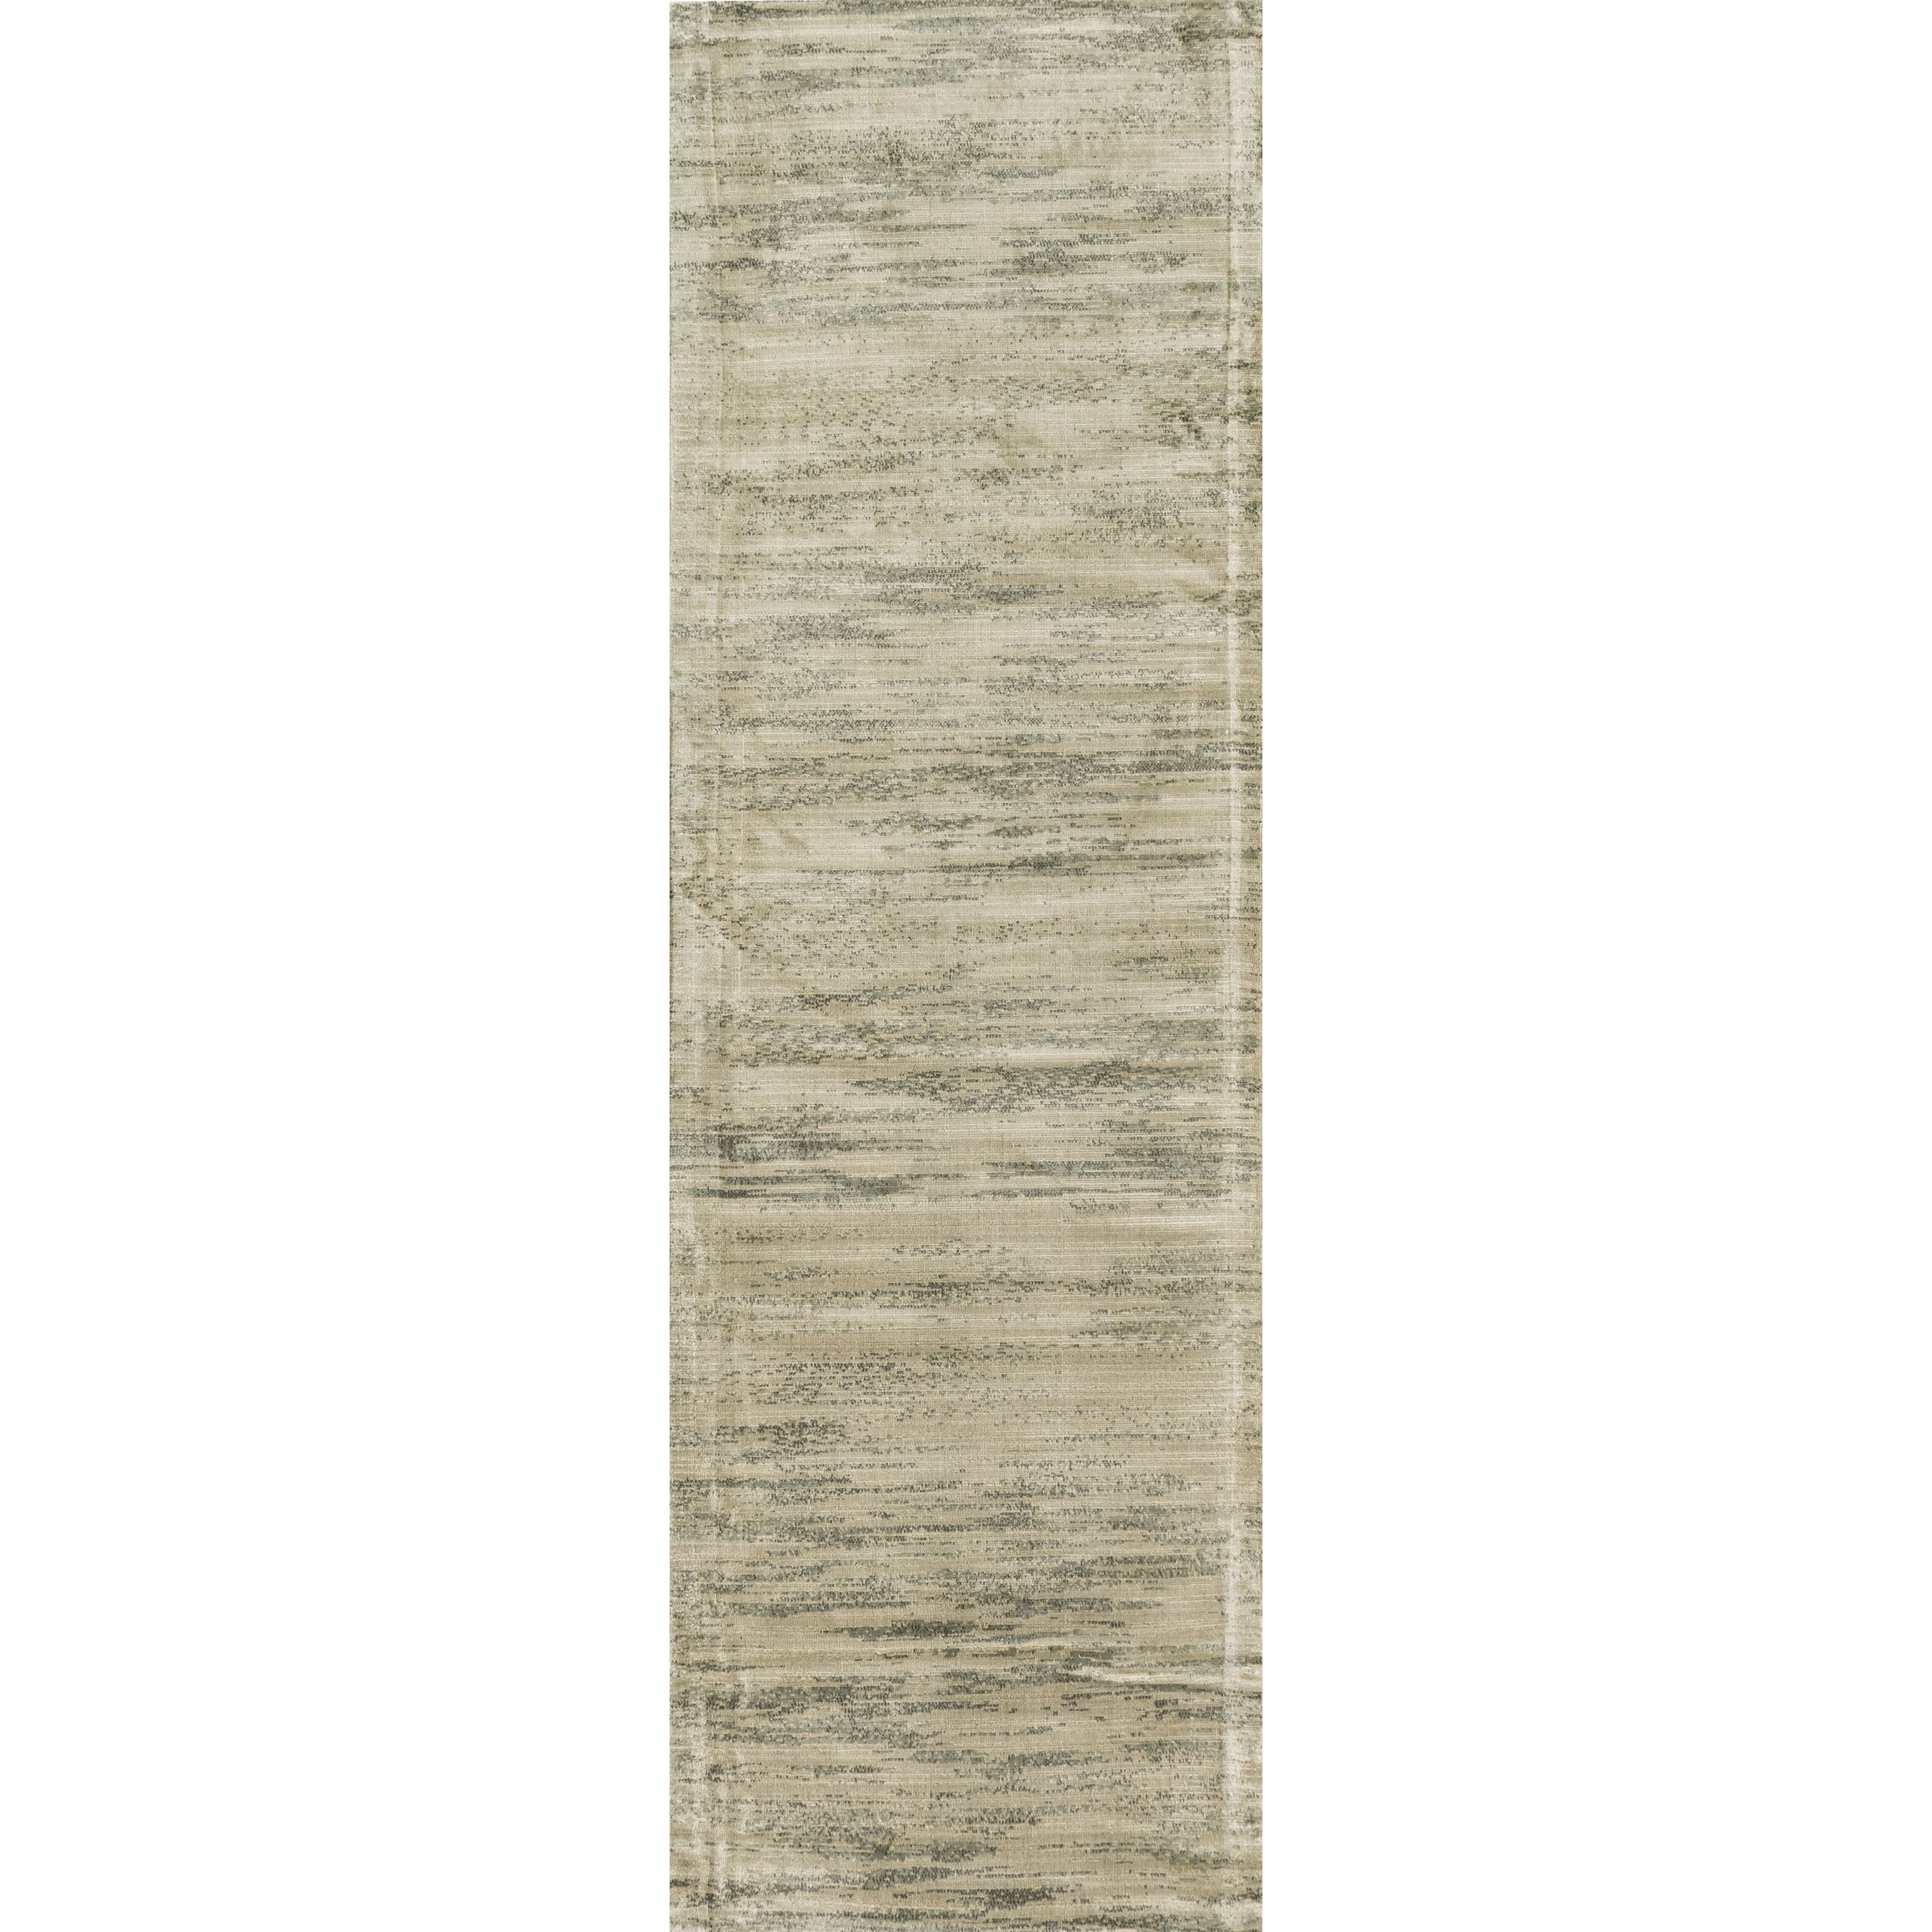 "Alexander Home Francis Seafoam Runner Rug (2'4 x 7'9) (Seafoam Runner (2'4 x 7'9)), Green, Size 2'4"" x 7'9"" (Viscose, Abstract)"